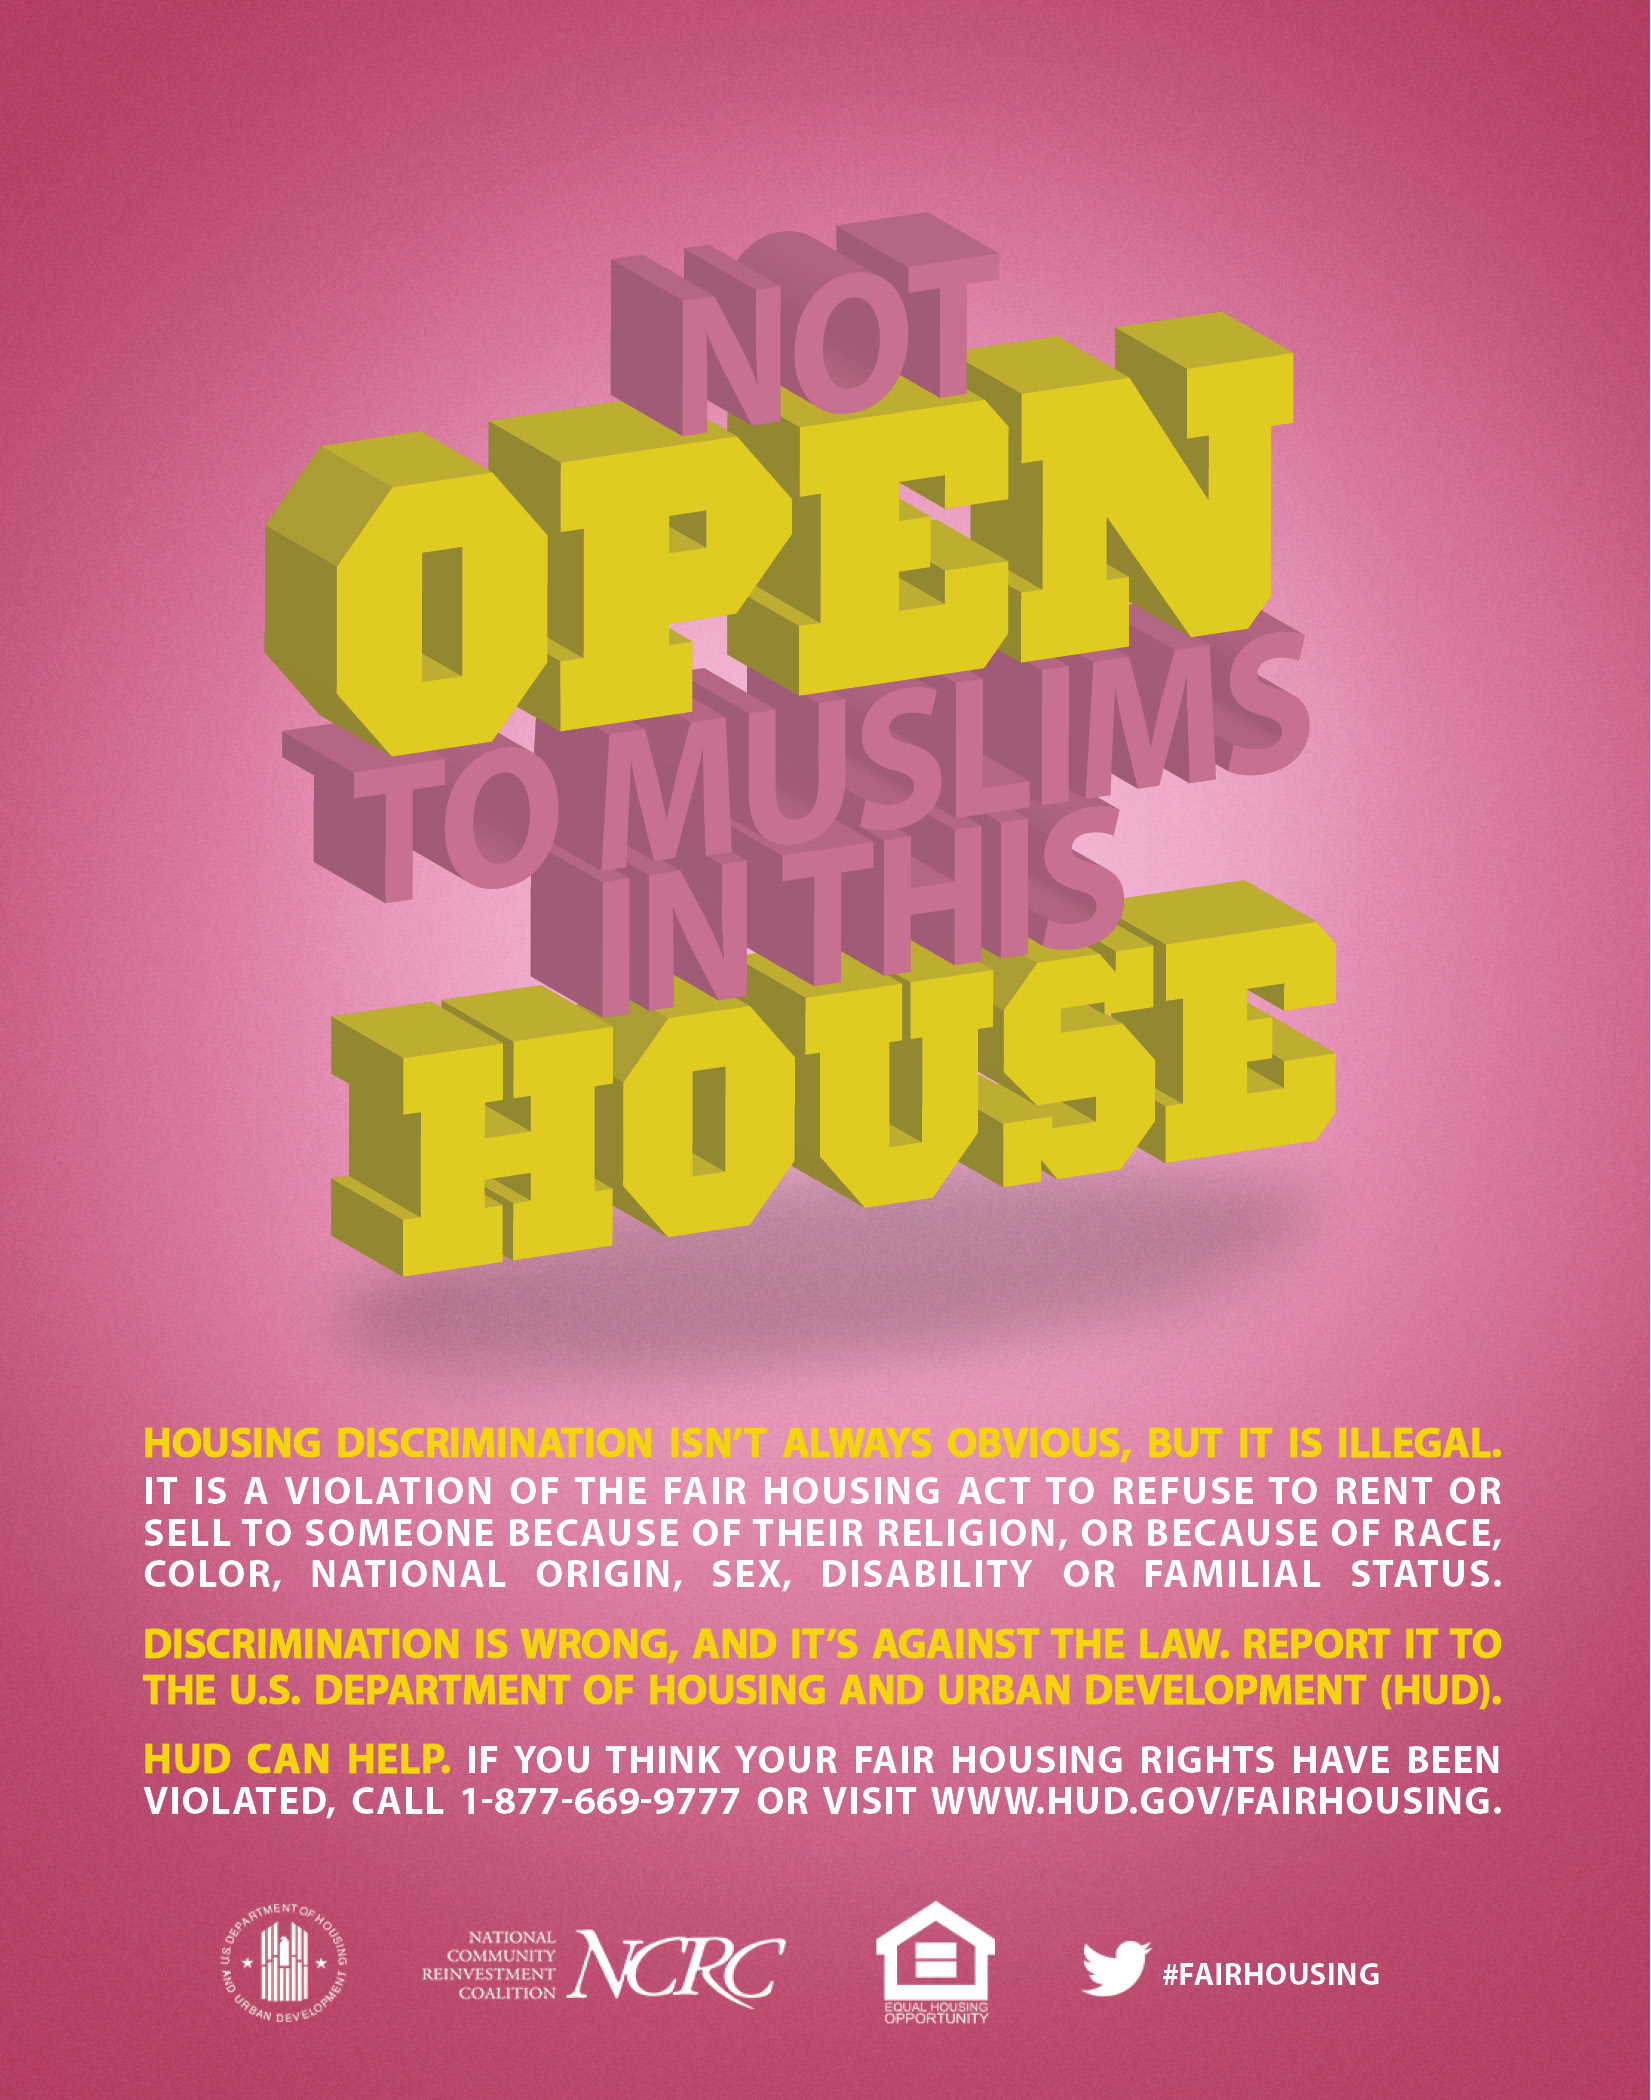 Hud us department of housing and urban development hud the not open to muslims in this house poster aljukfo Gallery